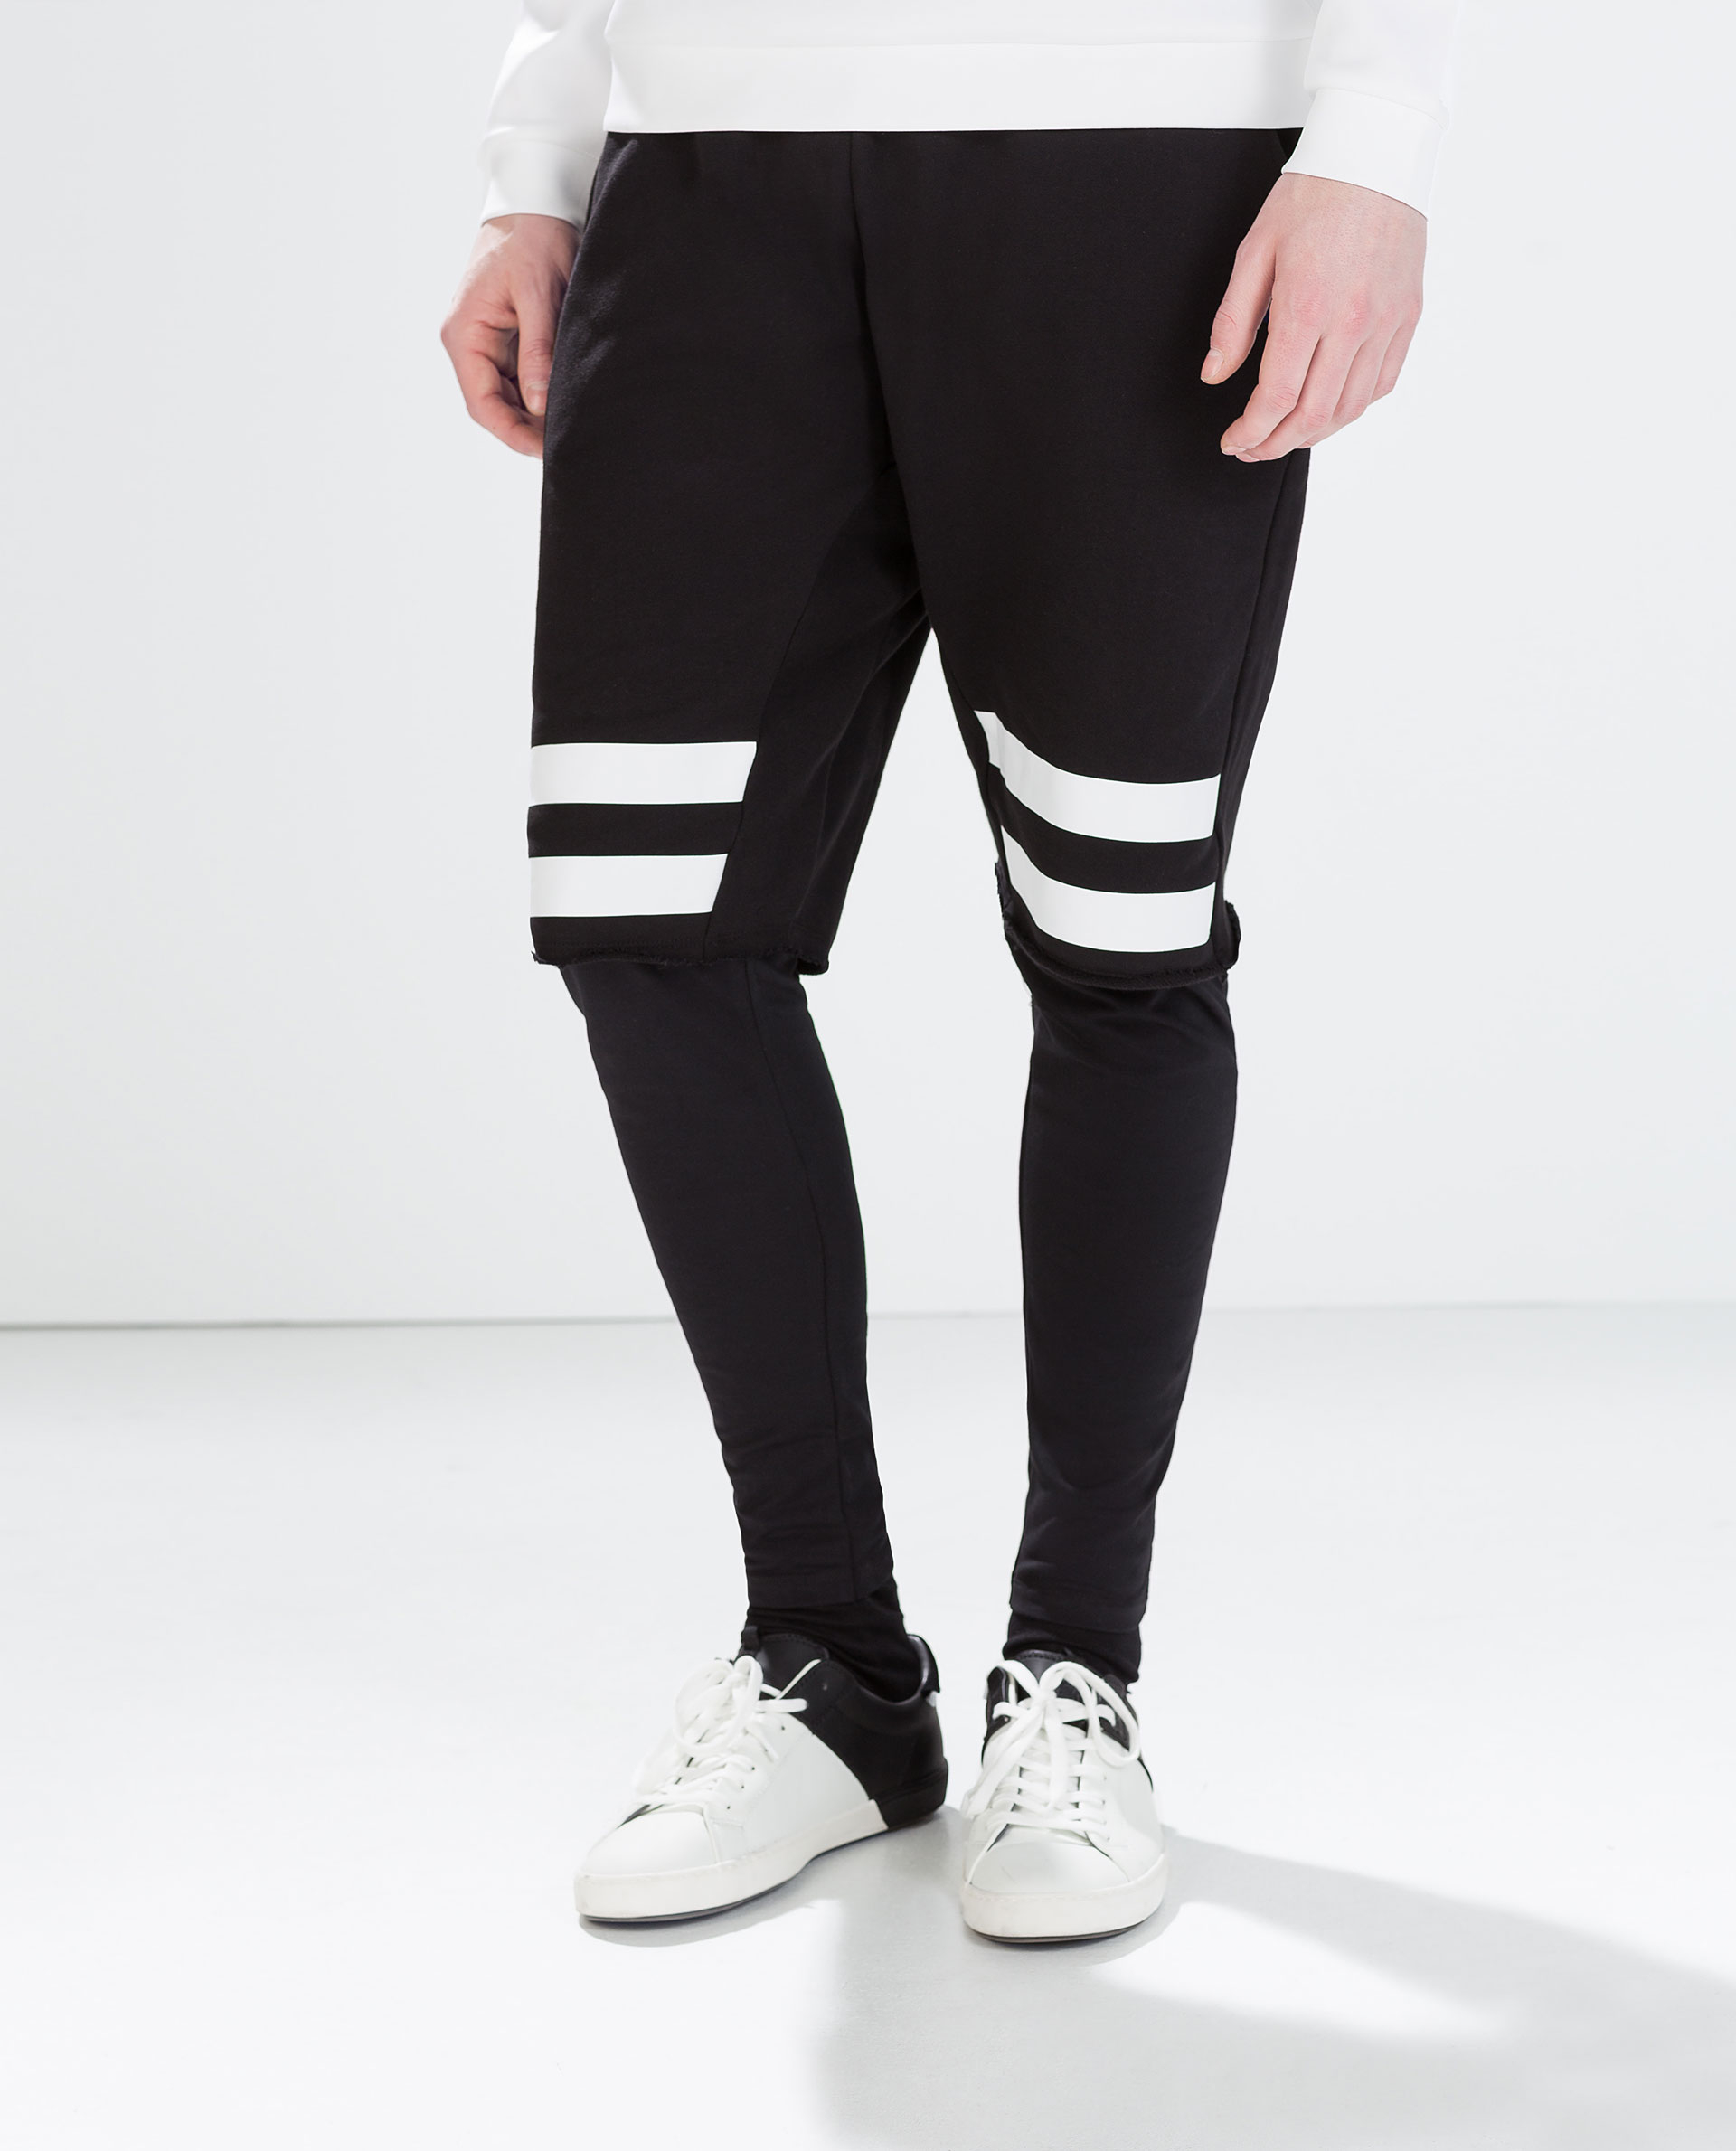 Apr 20,  · Pair leggings with shorts. This can be a cute and casual look. Just put on a plain-colored pair of leggings and throw on some denim, white, or black shorts, and you're good to go%(6).